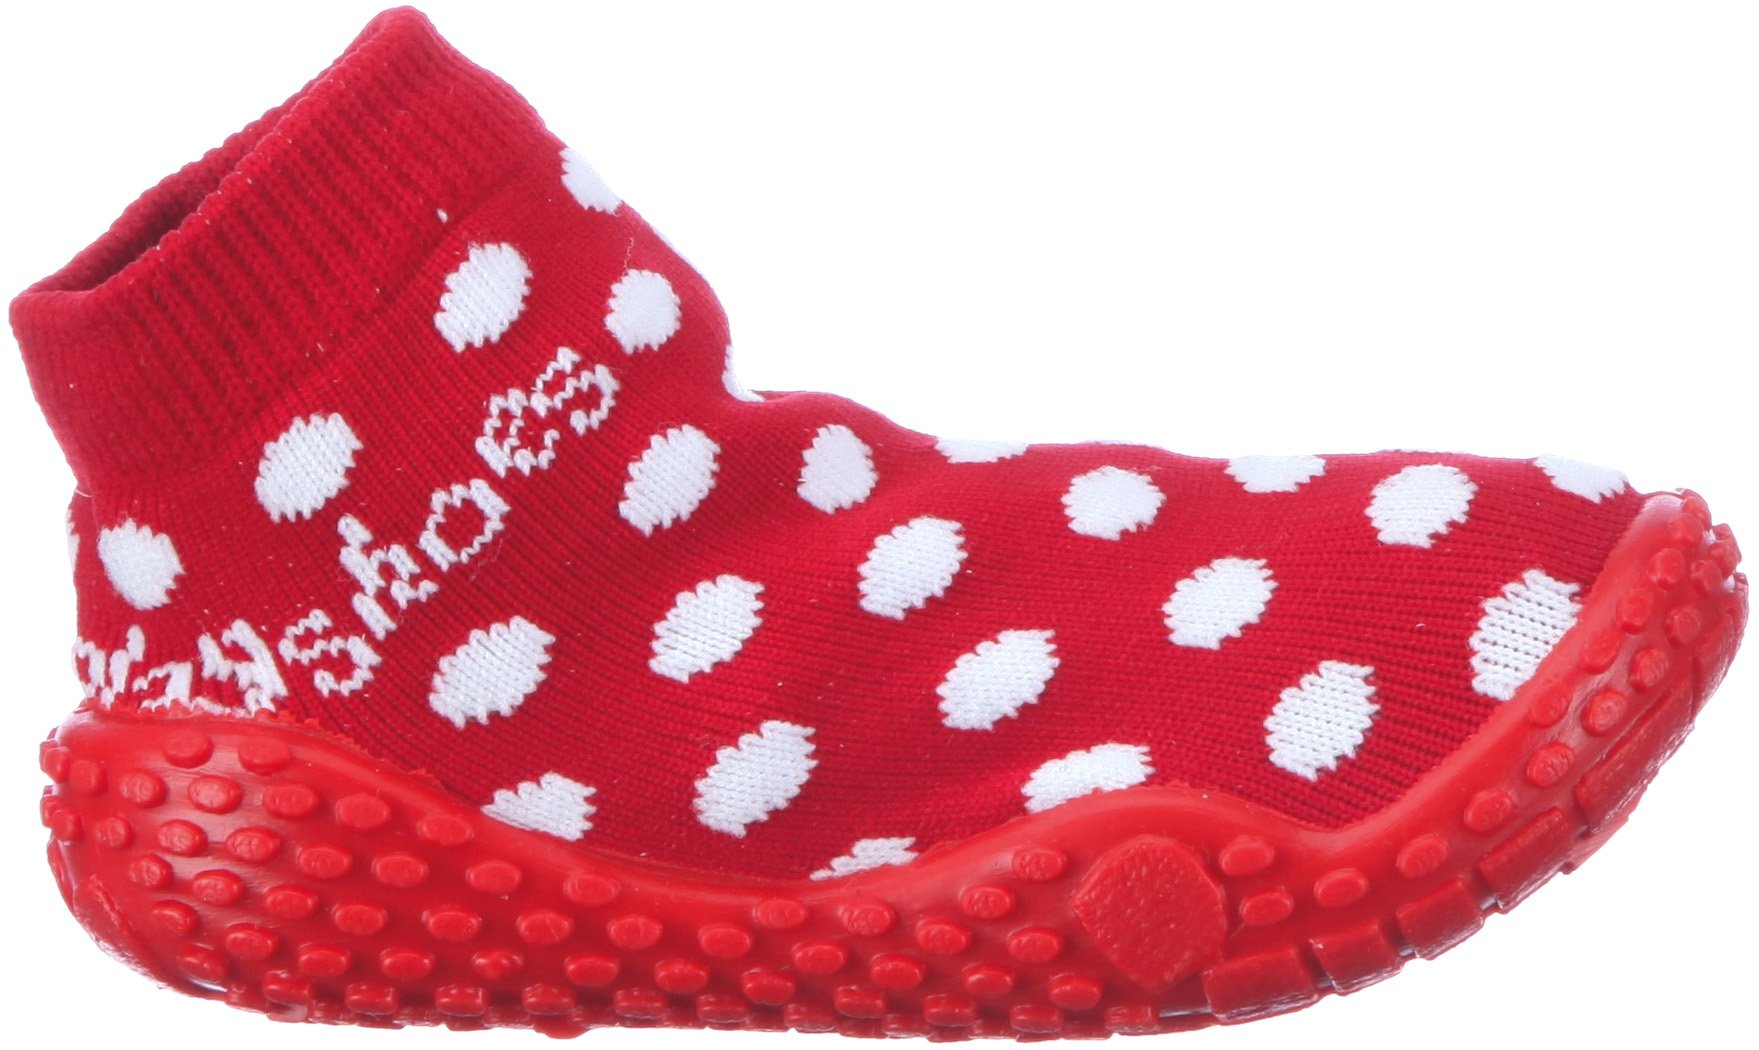 Playshoes Girls Dots Collection Rubber Aqua Swim/Beach Sock Shoes (7 M US Toddler) by Playshoes (Image #6)